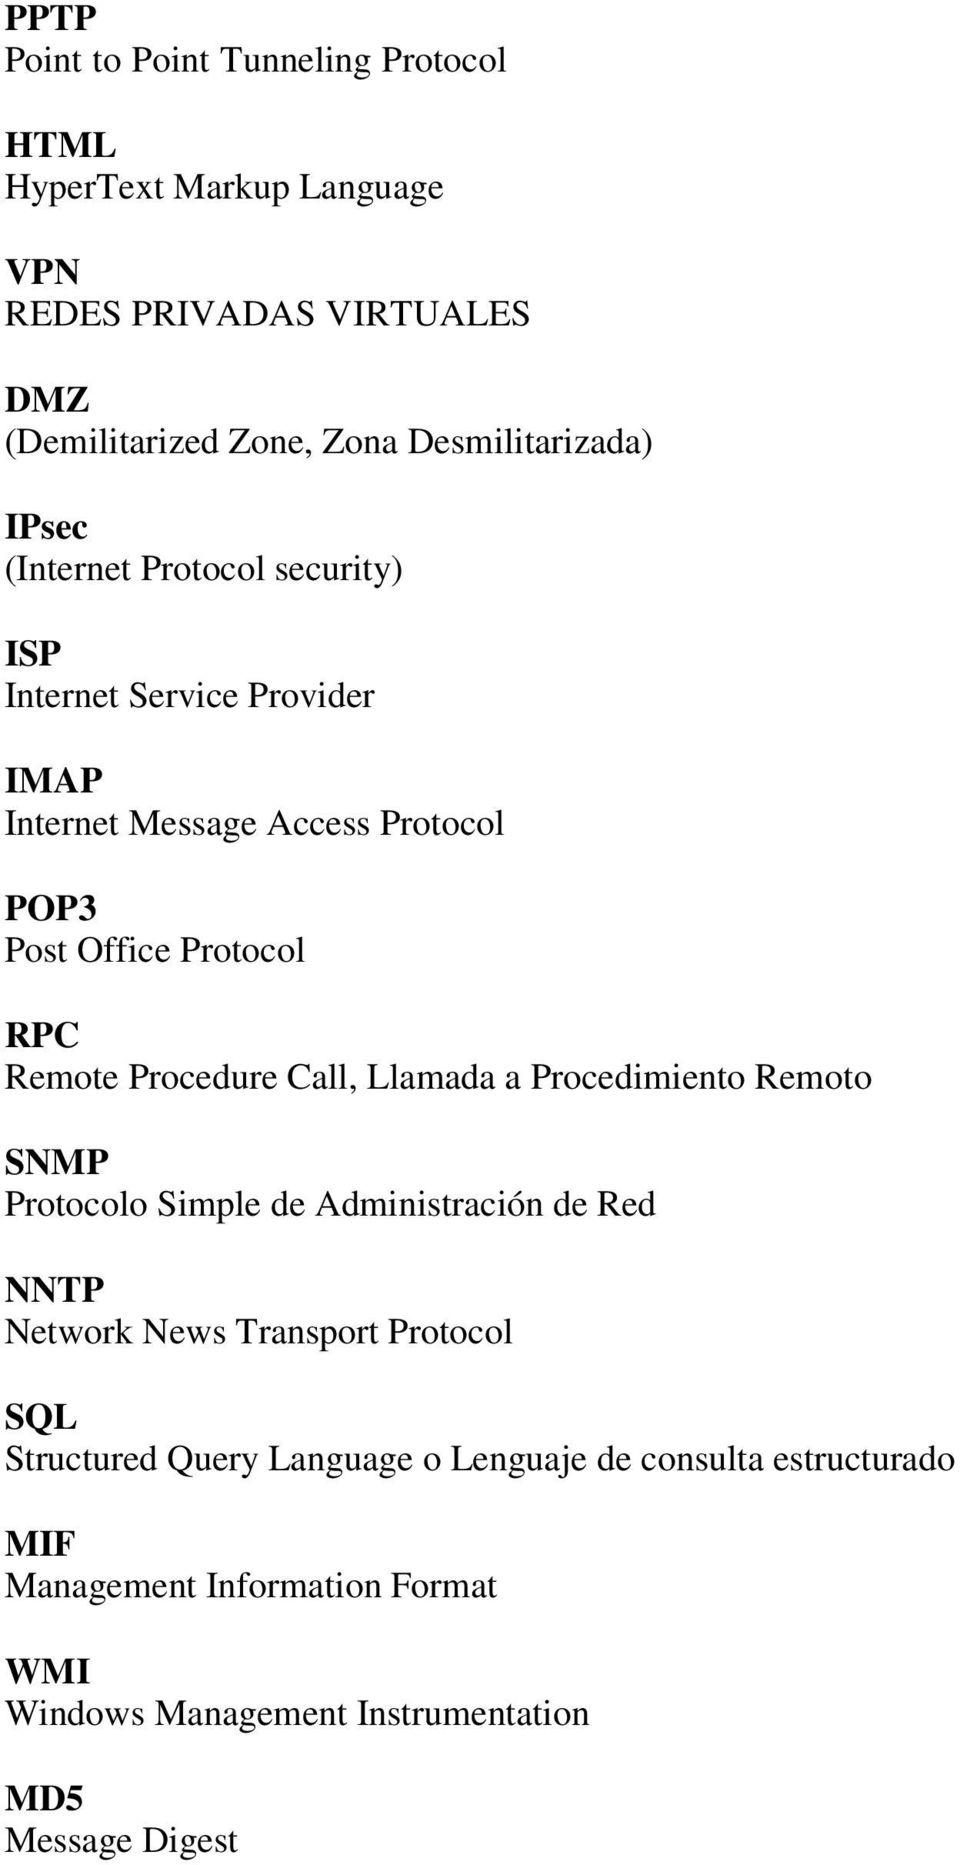 Protocol RPC Remote Procedure Call, Llamada a Procedimiento Remoto SNMP Protocolo Simple de Administración de Red NNTP Network News Transport